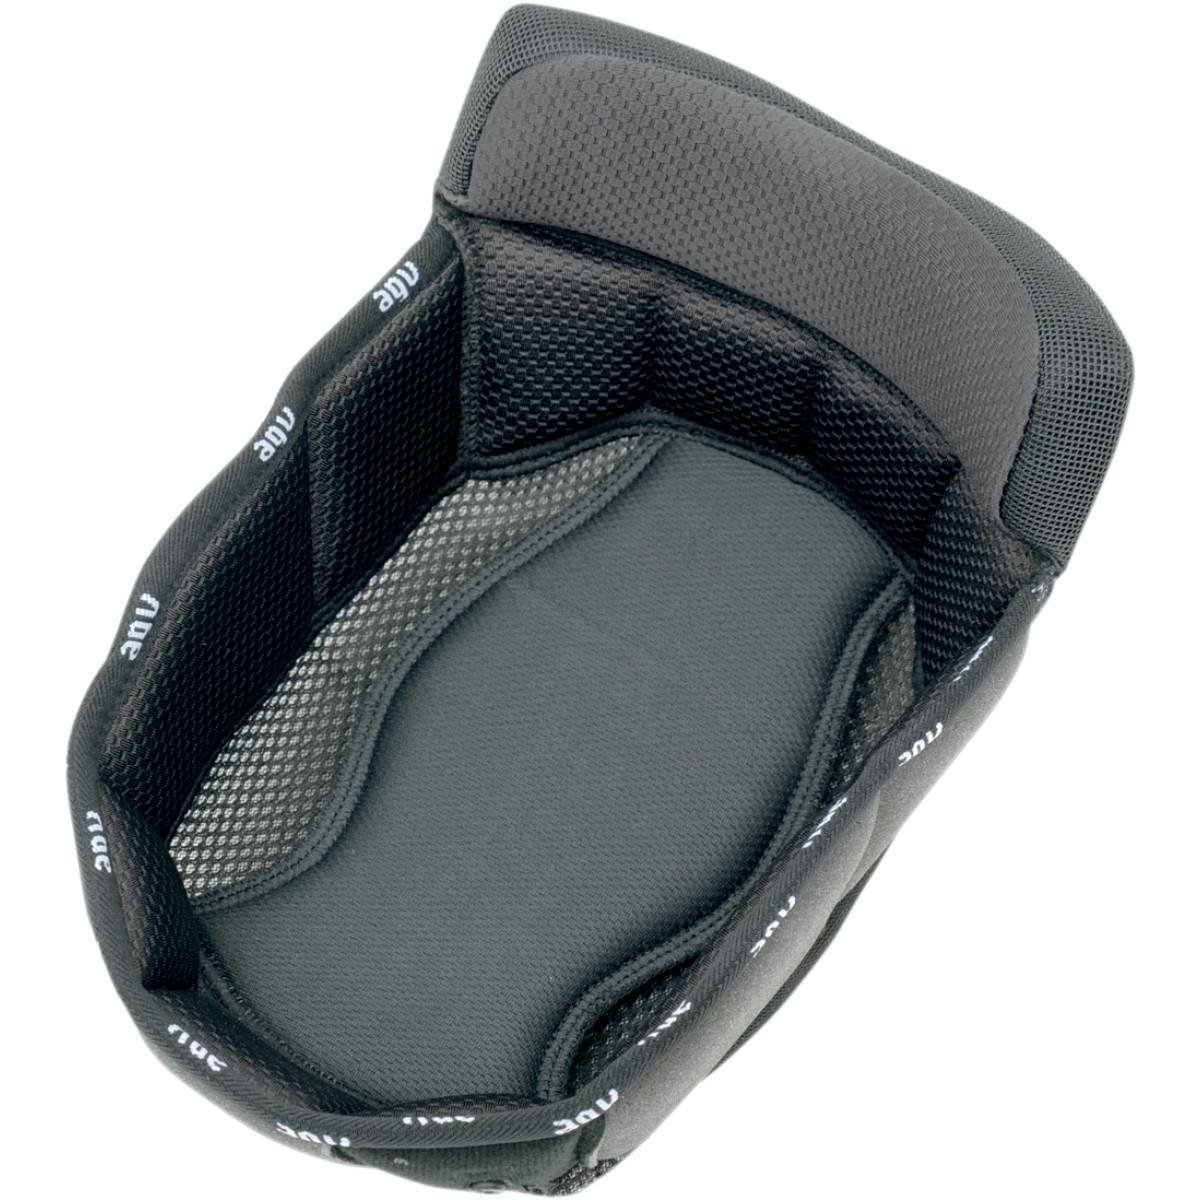 AGV Helmet Liner for AX-8 Dual Sport - XS KIT76101